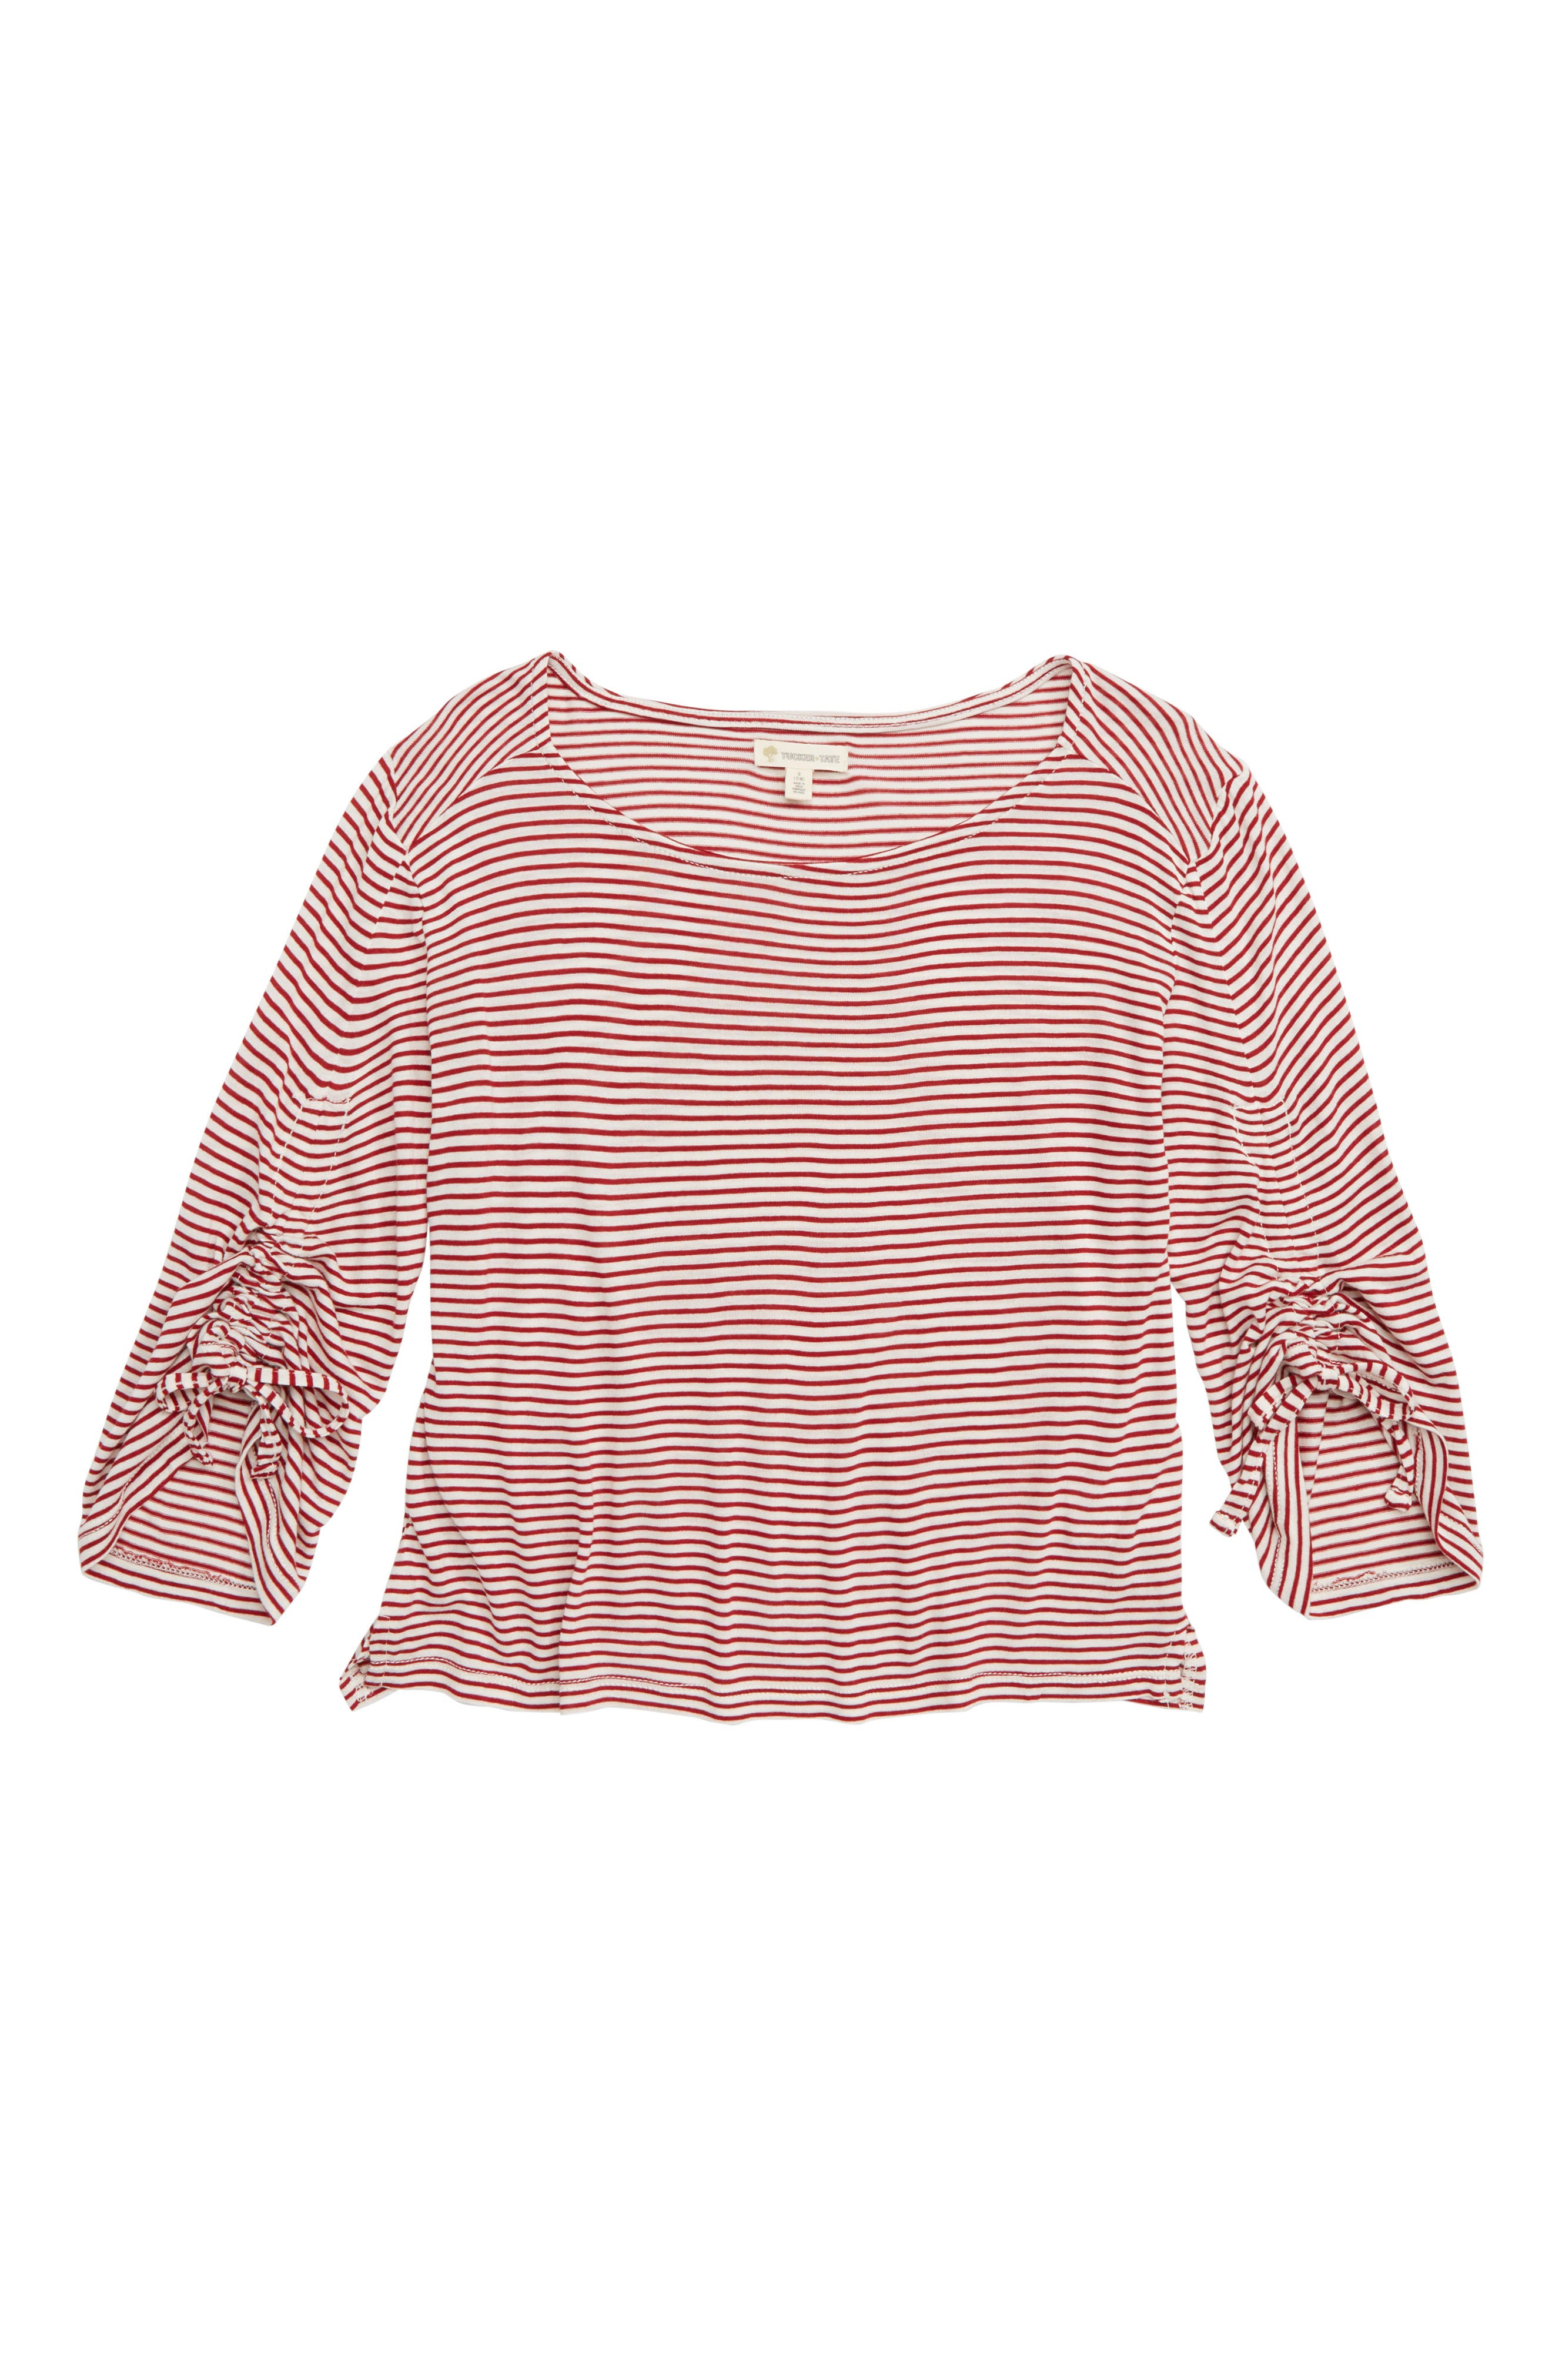 Ruched Sleeve Tee,                         Main,                         color, RED ROSEWOOD- IVORY STRIPE